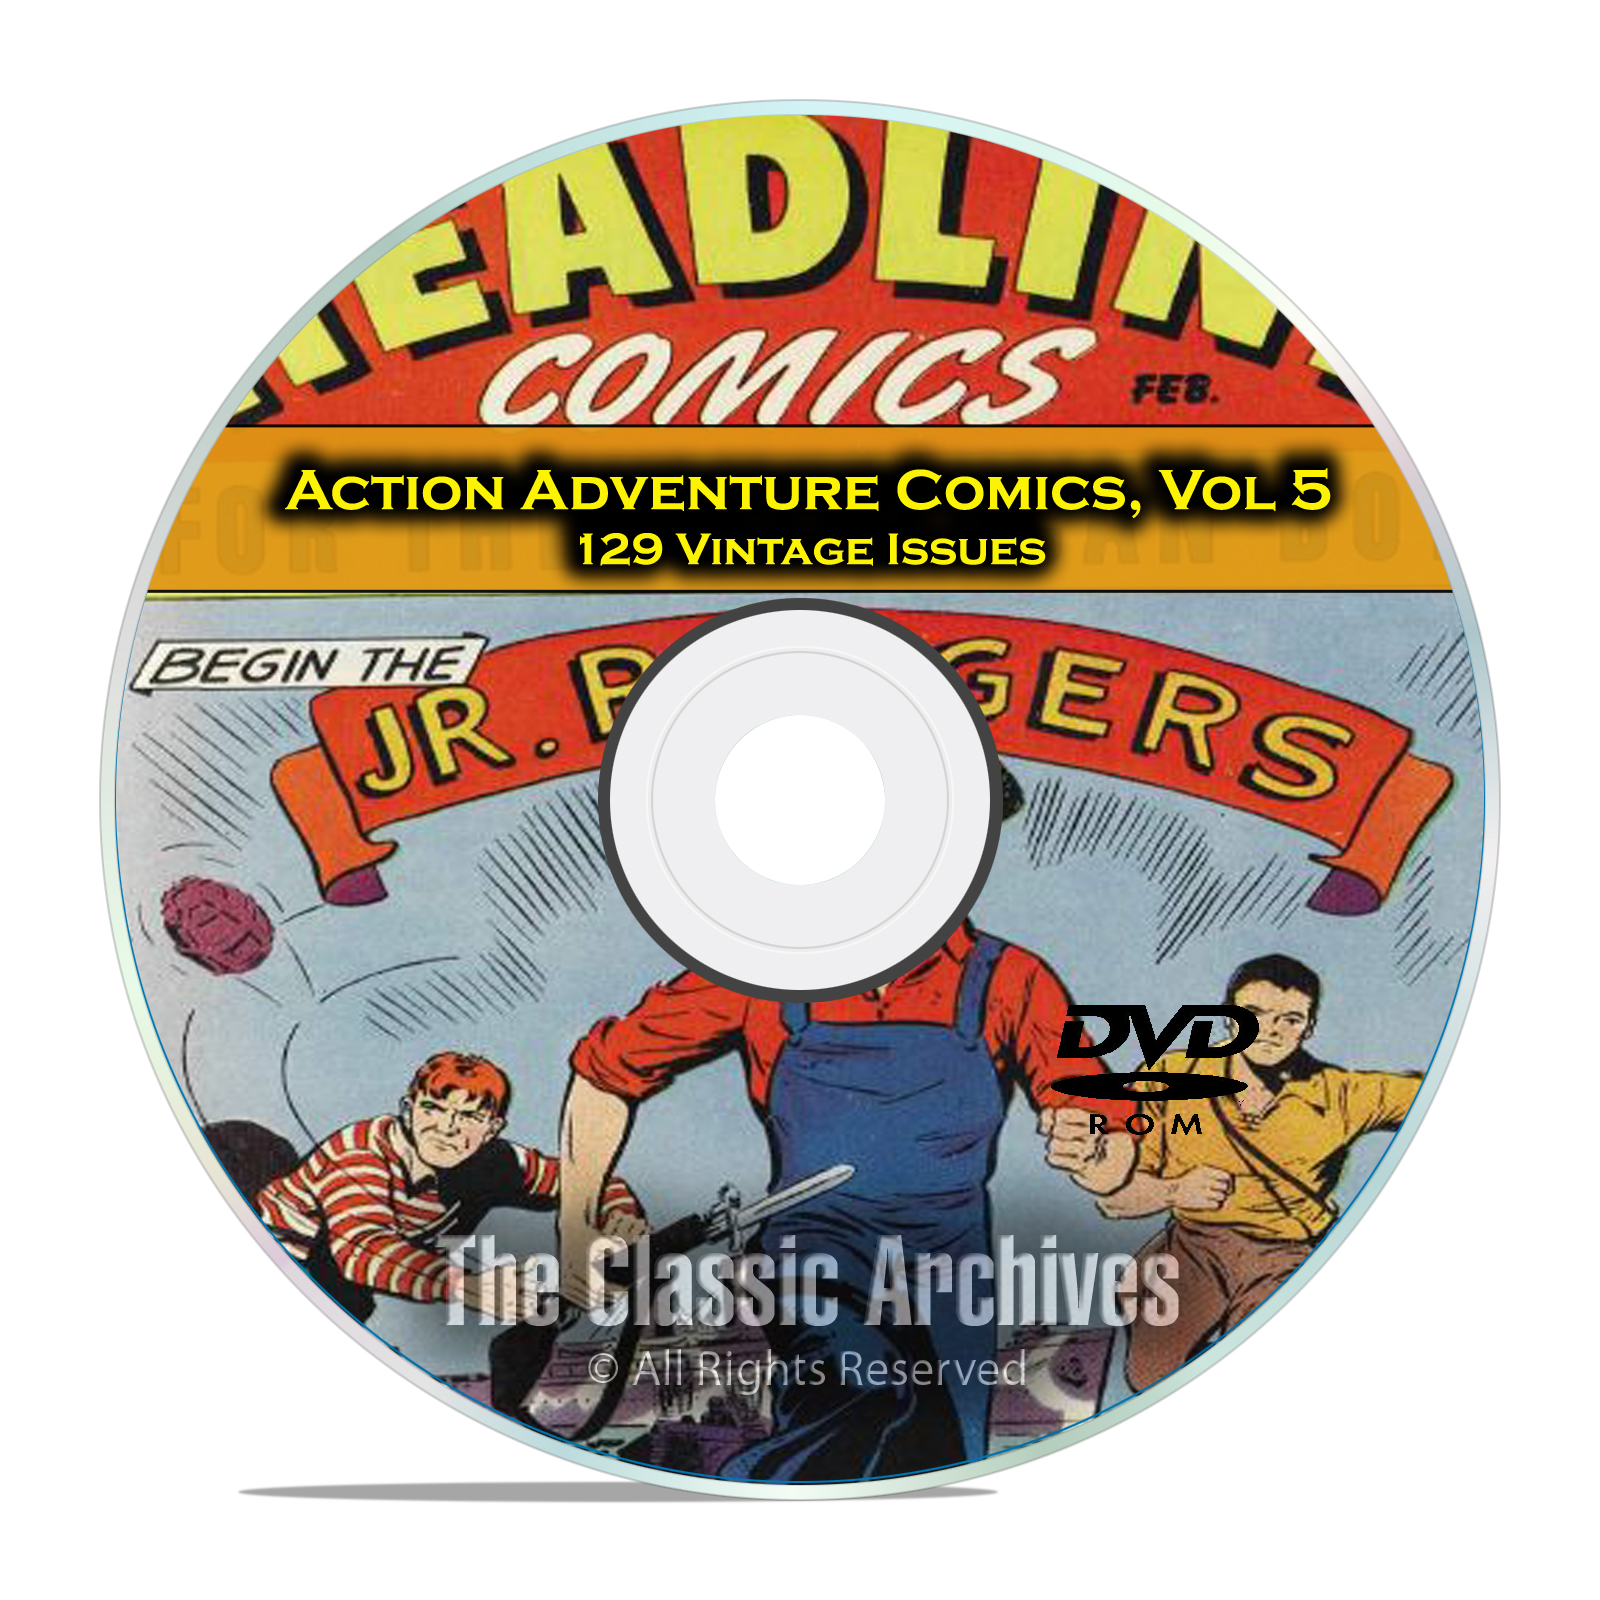 Action Adventure Comics, Vol 5, Headline, Treasure, Rocket, Golden Age DVD